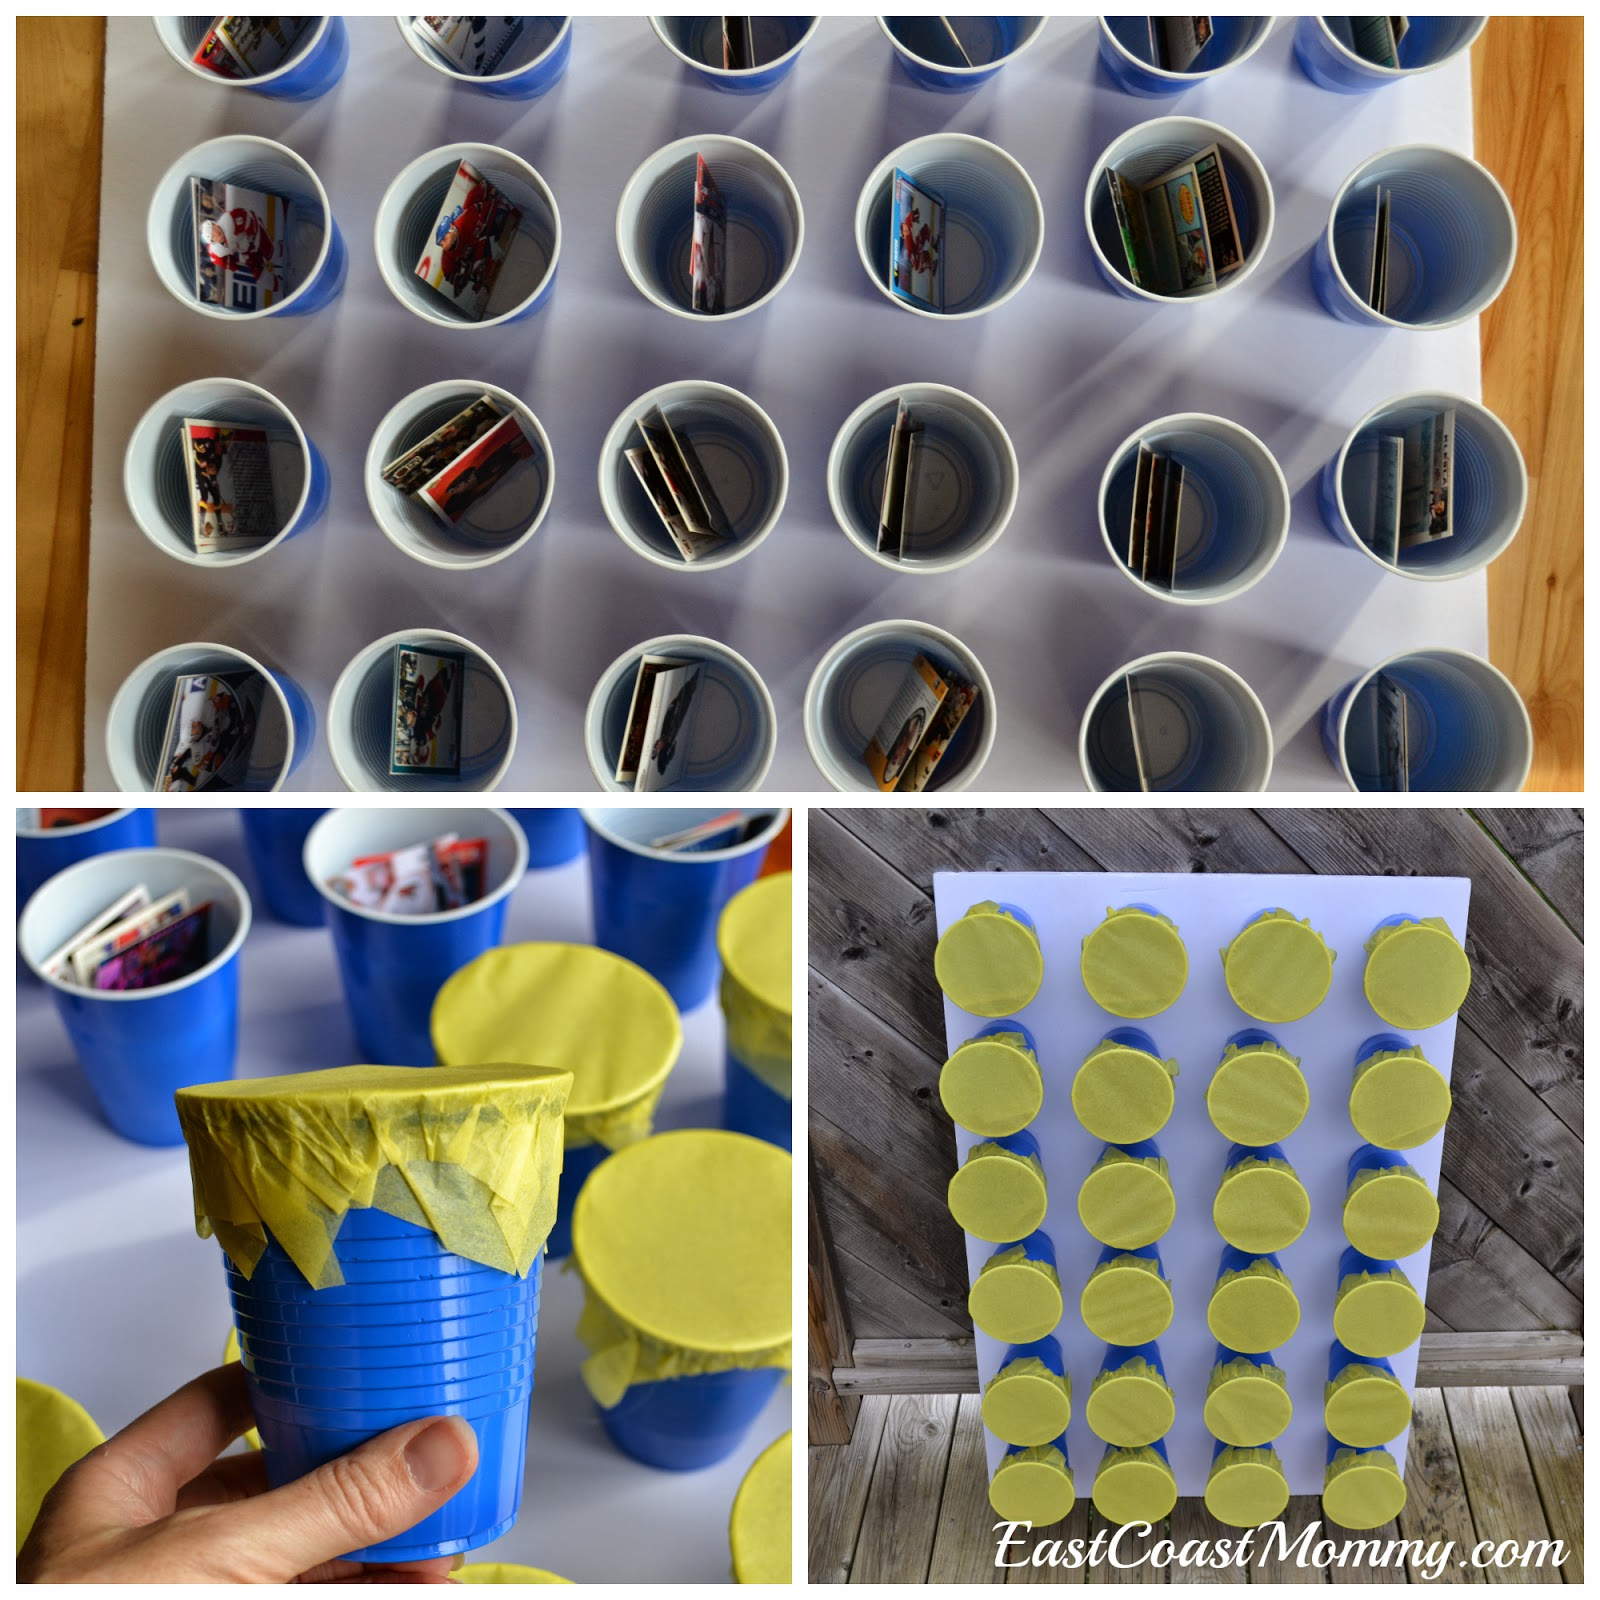 East coast mommy diy prize punch for Diy party games for adults